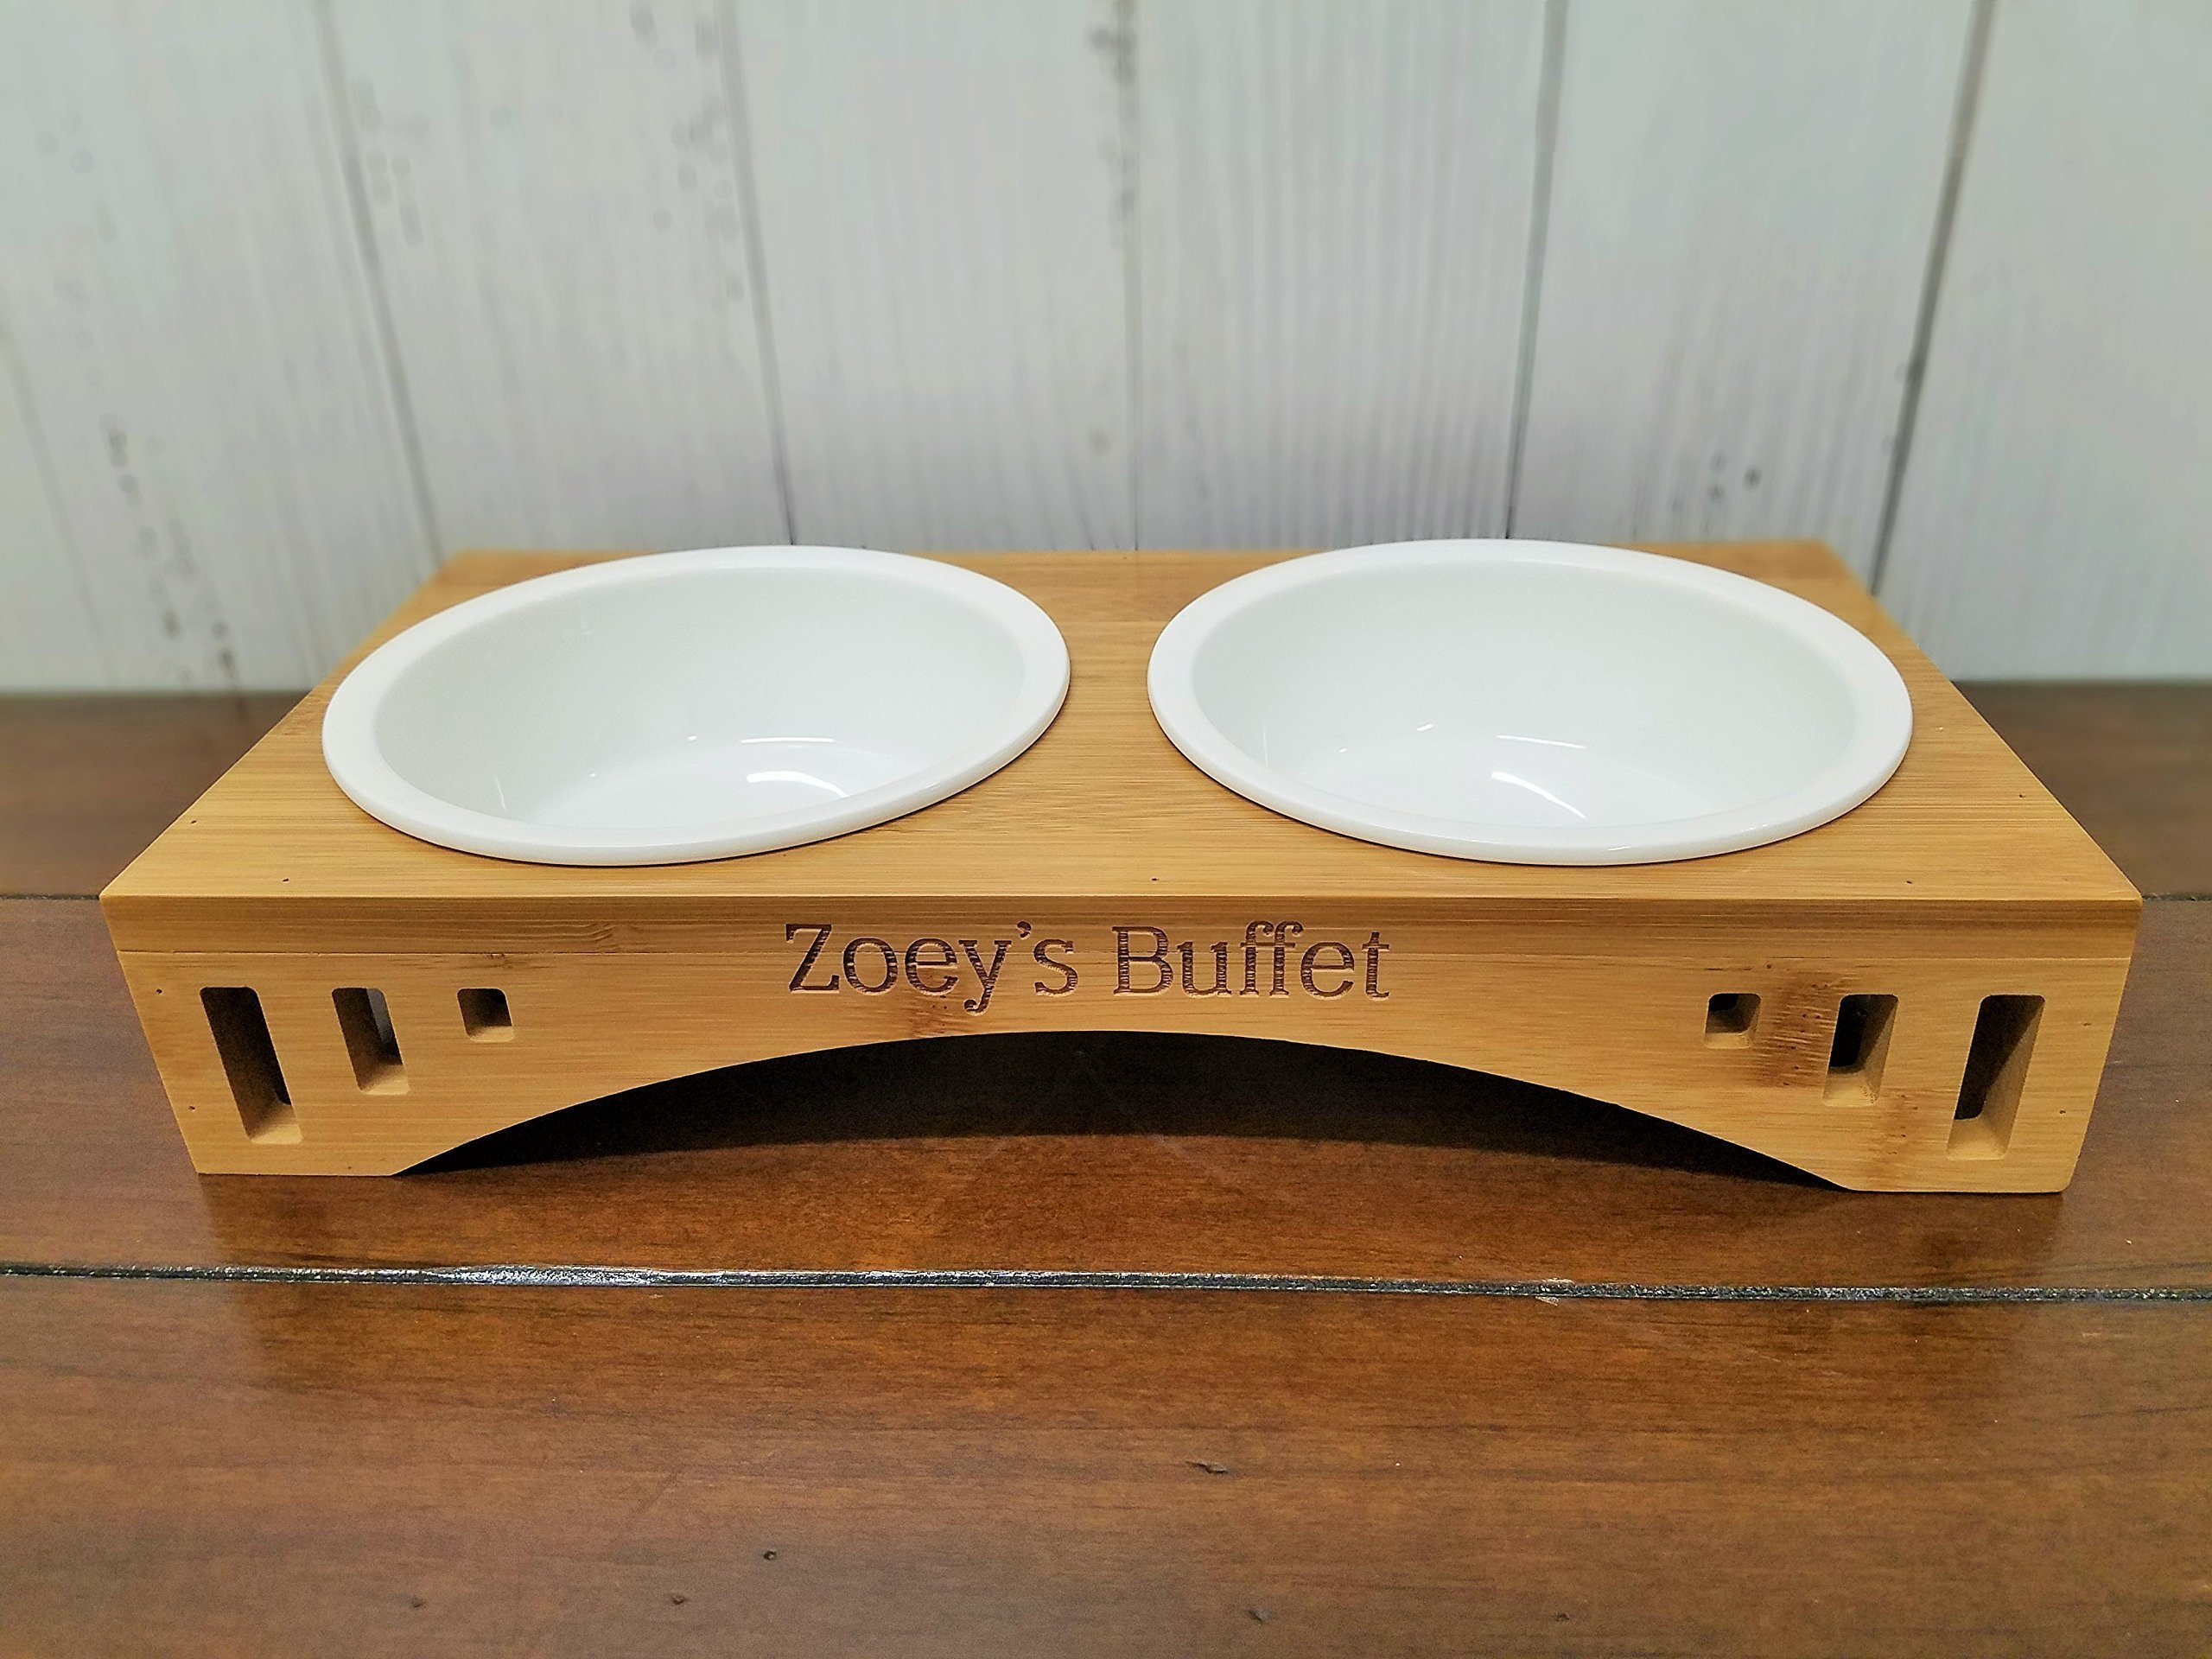 Personalized Elevated Pet Feeder Stand with Two Bowls - Engraved Bamboo Wood - Dog or Cat Food Station